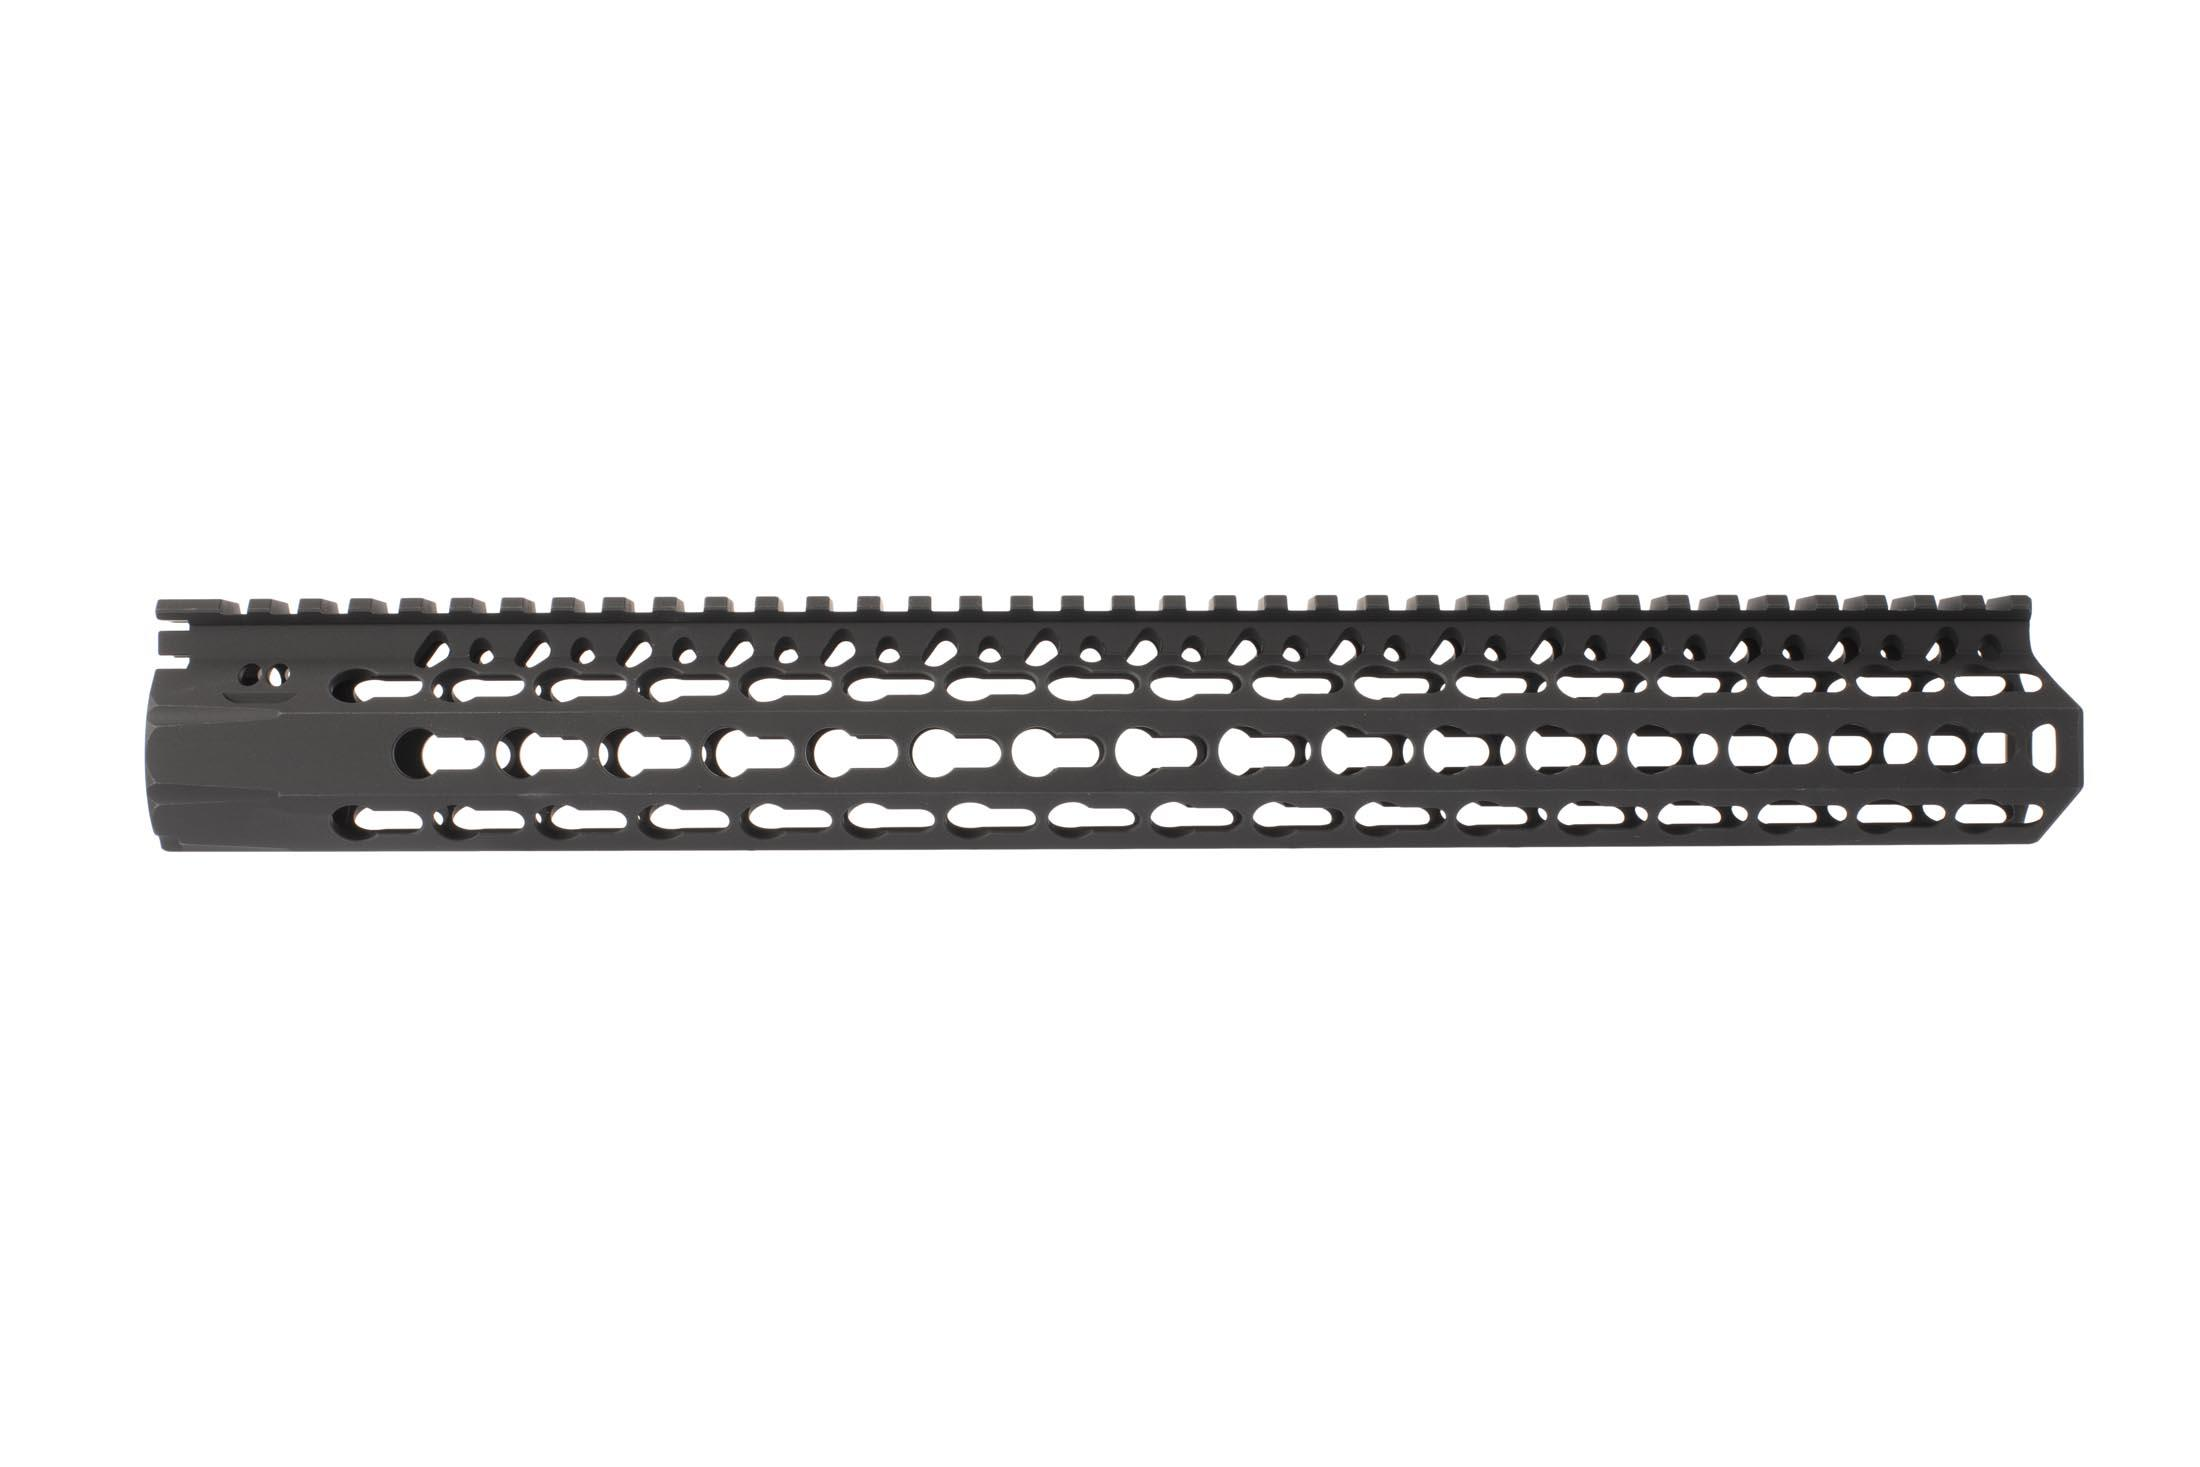 BCM 15in KMR Alpha rail for the AR-15 offers KeyMod tracks along seven sides for your favorite accessories